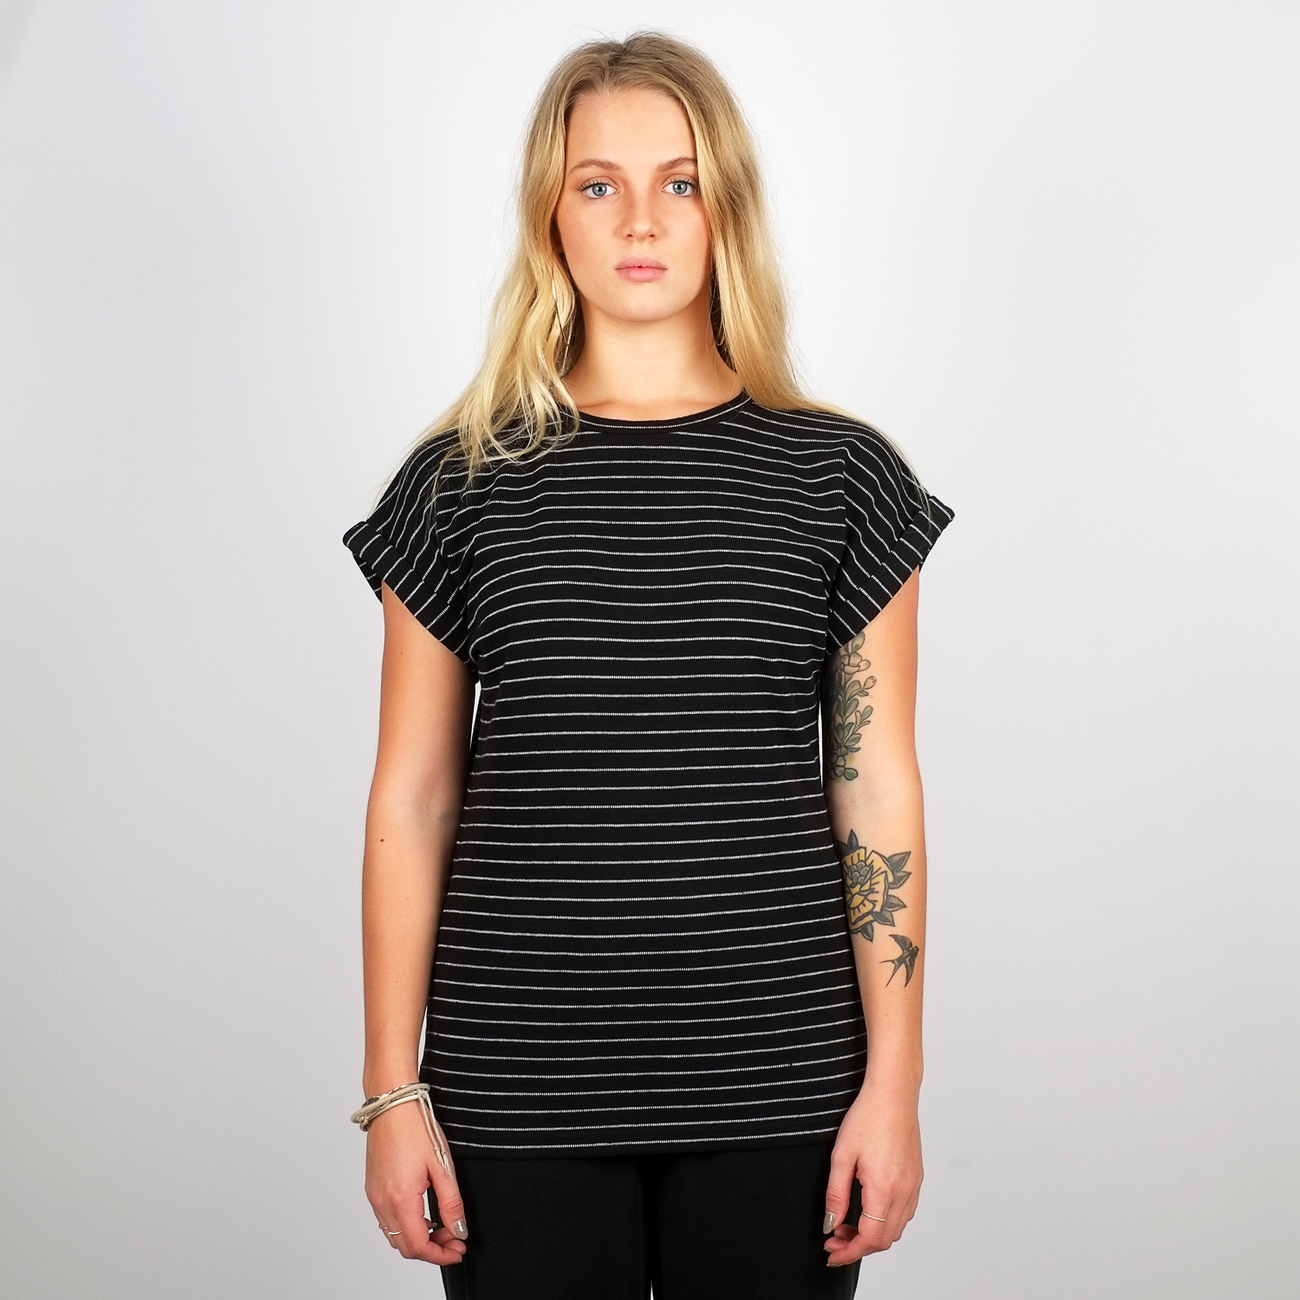 T-shirt Visby Jacquard Stripes Black